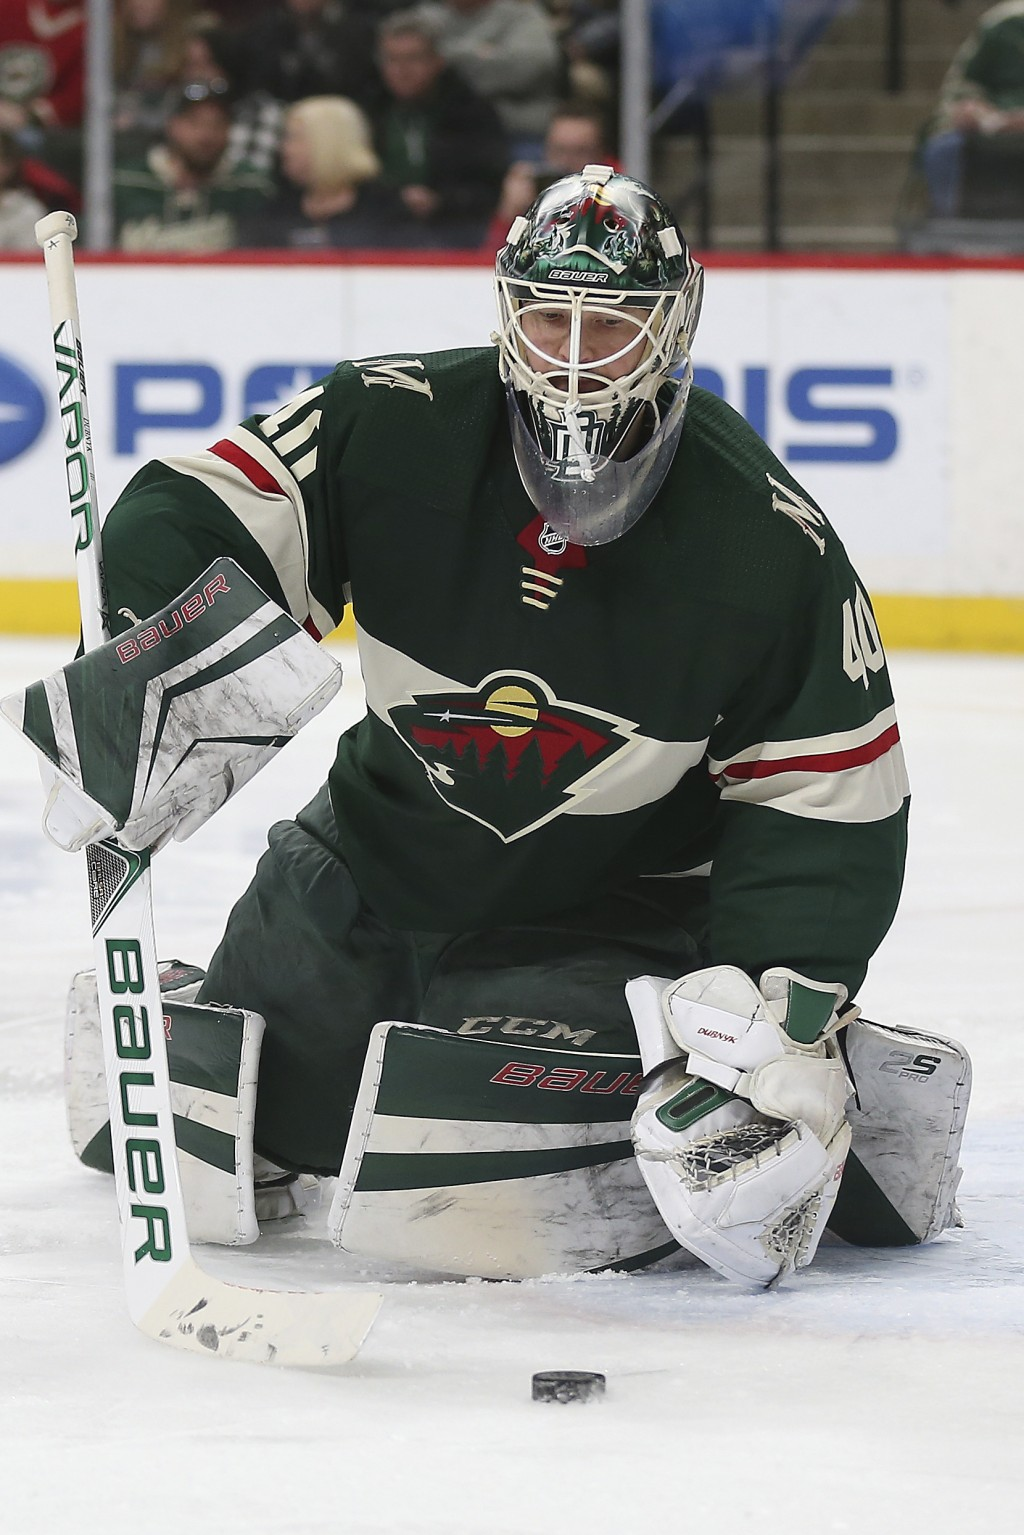 Minnesota Wild's goalie Devan Dubnyk (40) watches the puck in the second period of an NHL hockey game against the Winnipeg Jets, Saturday, Jan. 13, 20